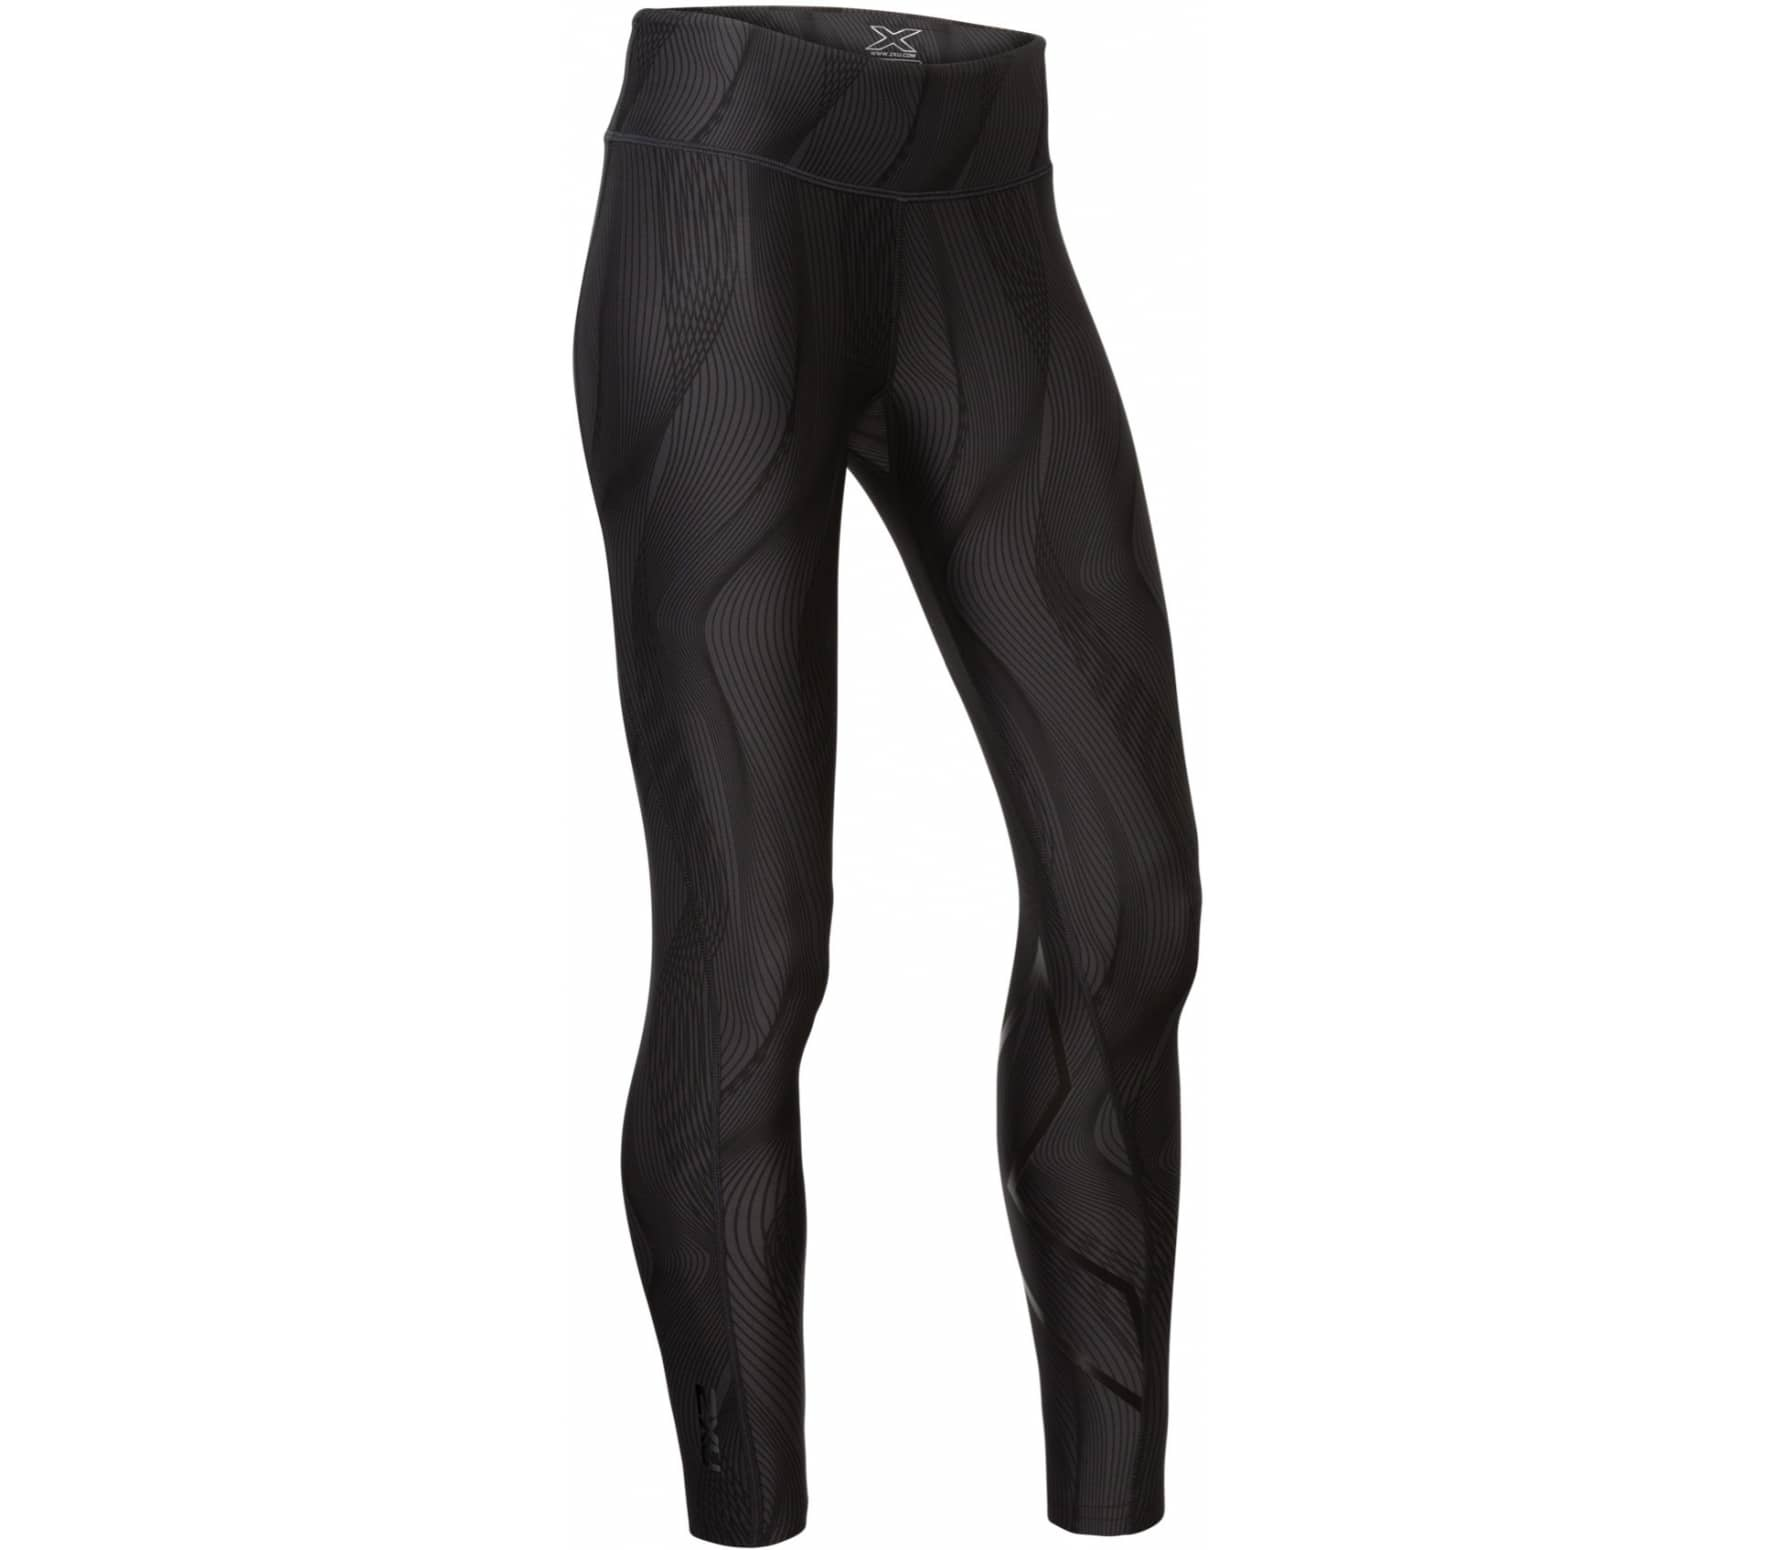 33680143 2xu Print Mid-Rise Compression Tights with Storage Women black - buy ...